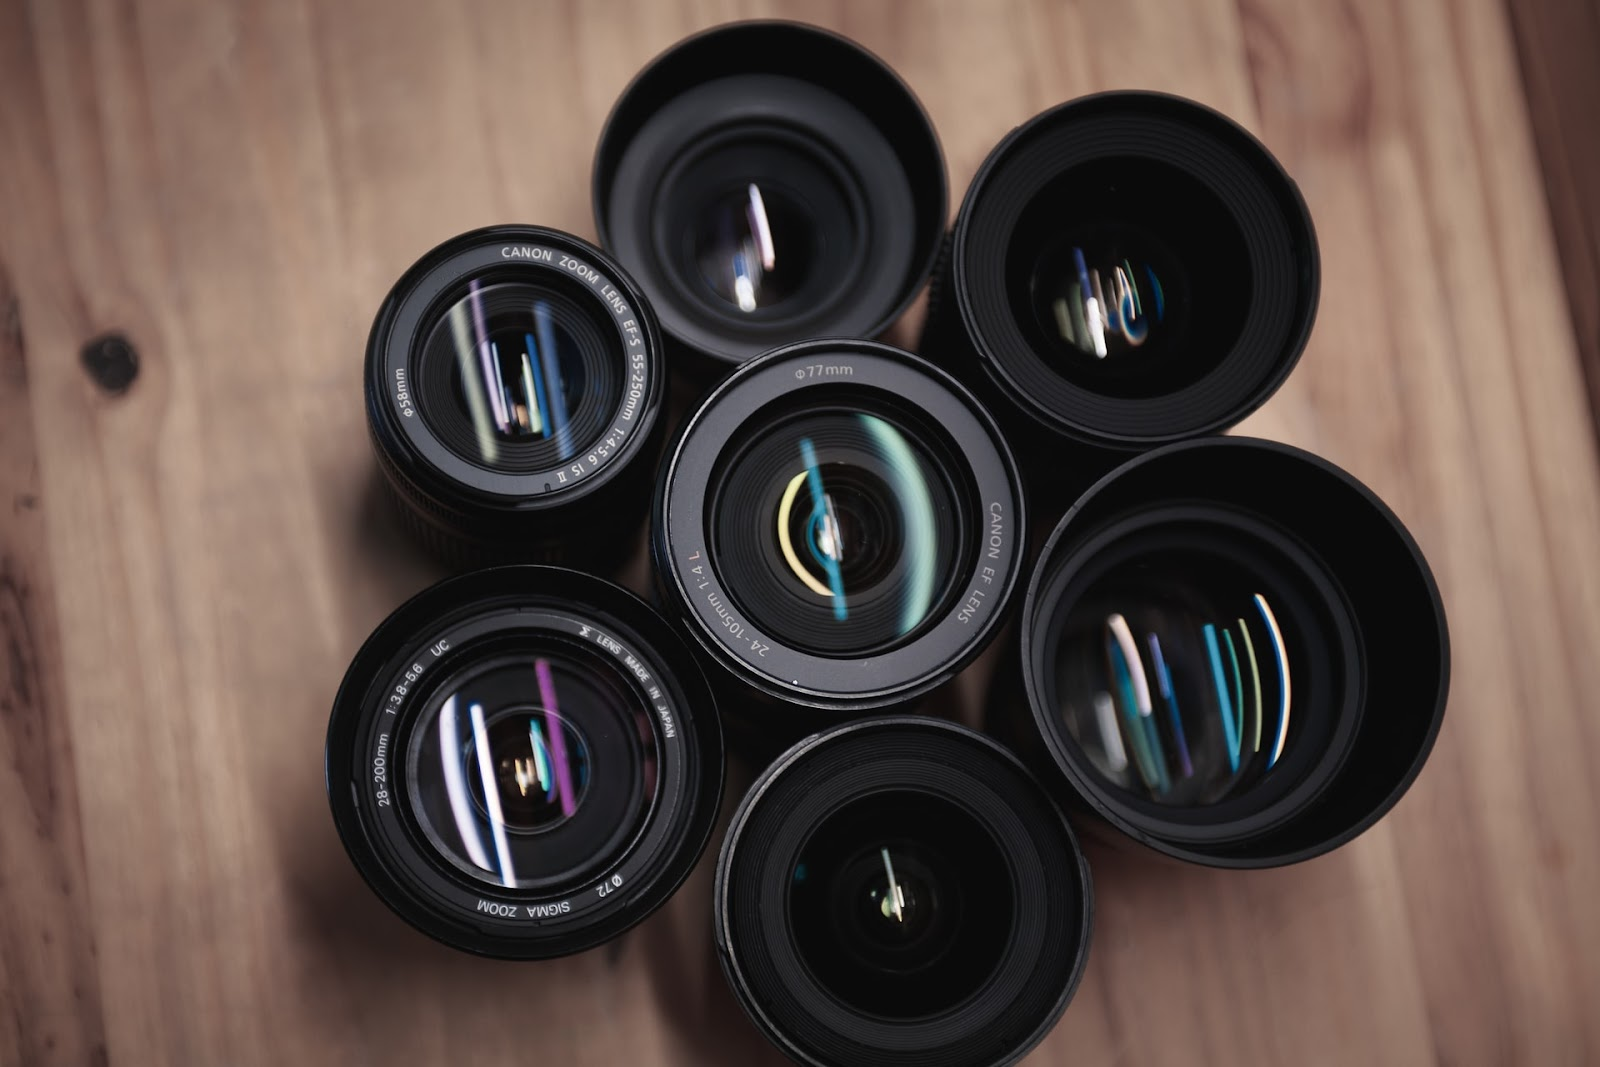 All lenses will cause some degree of lens distortion.